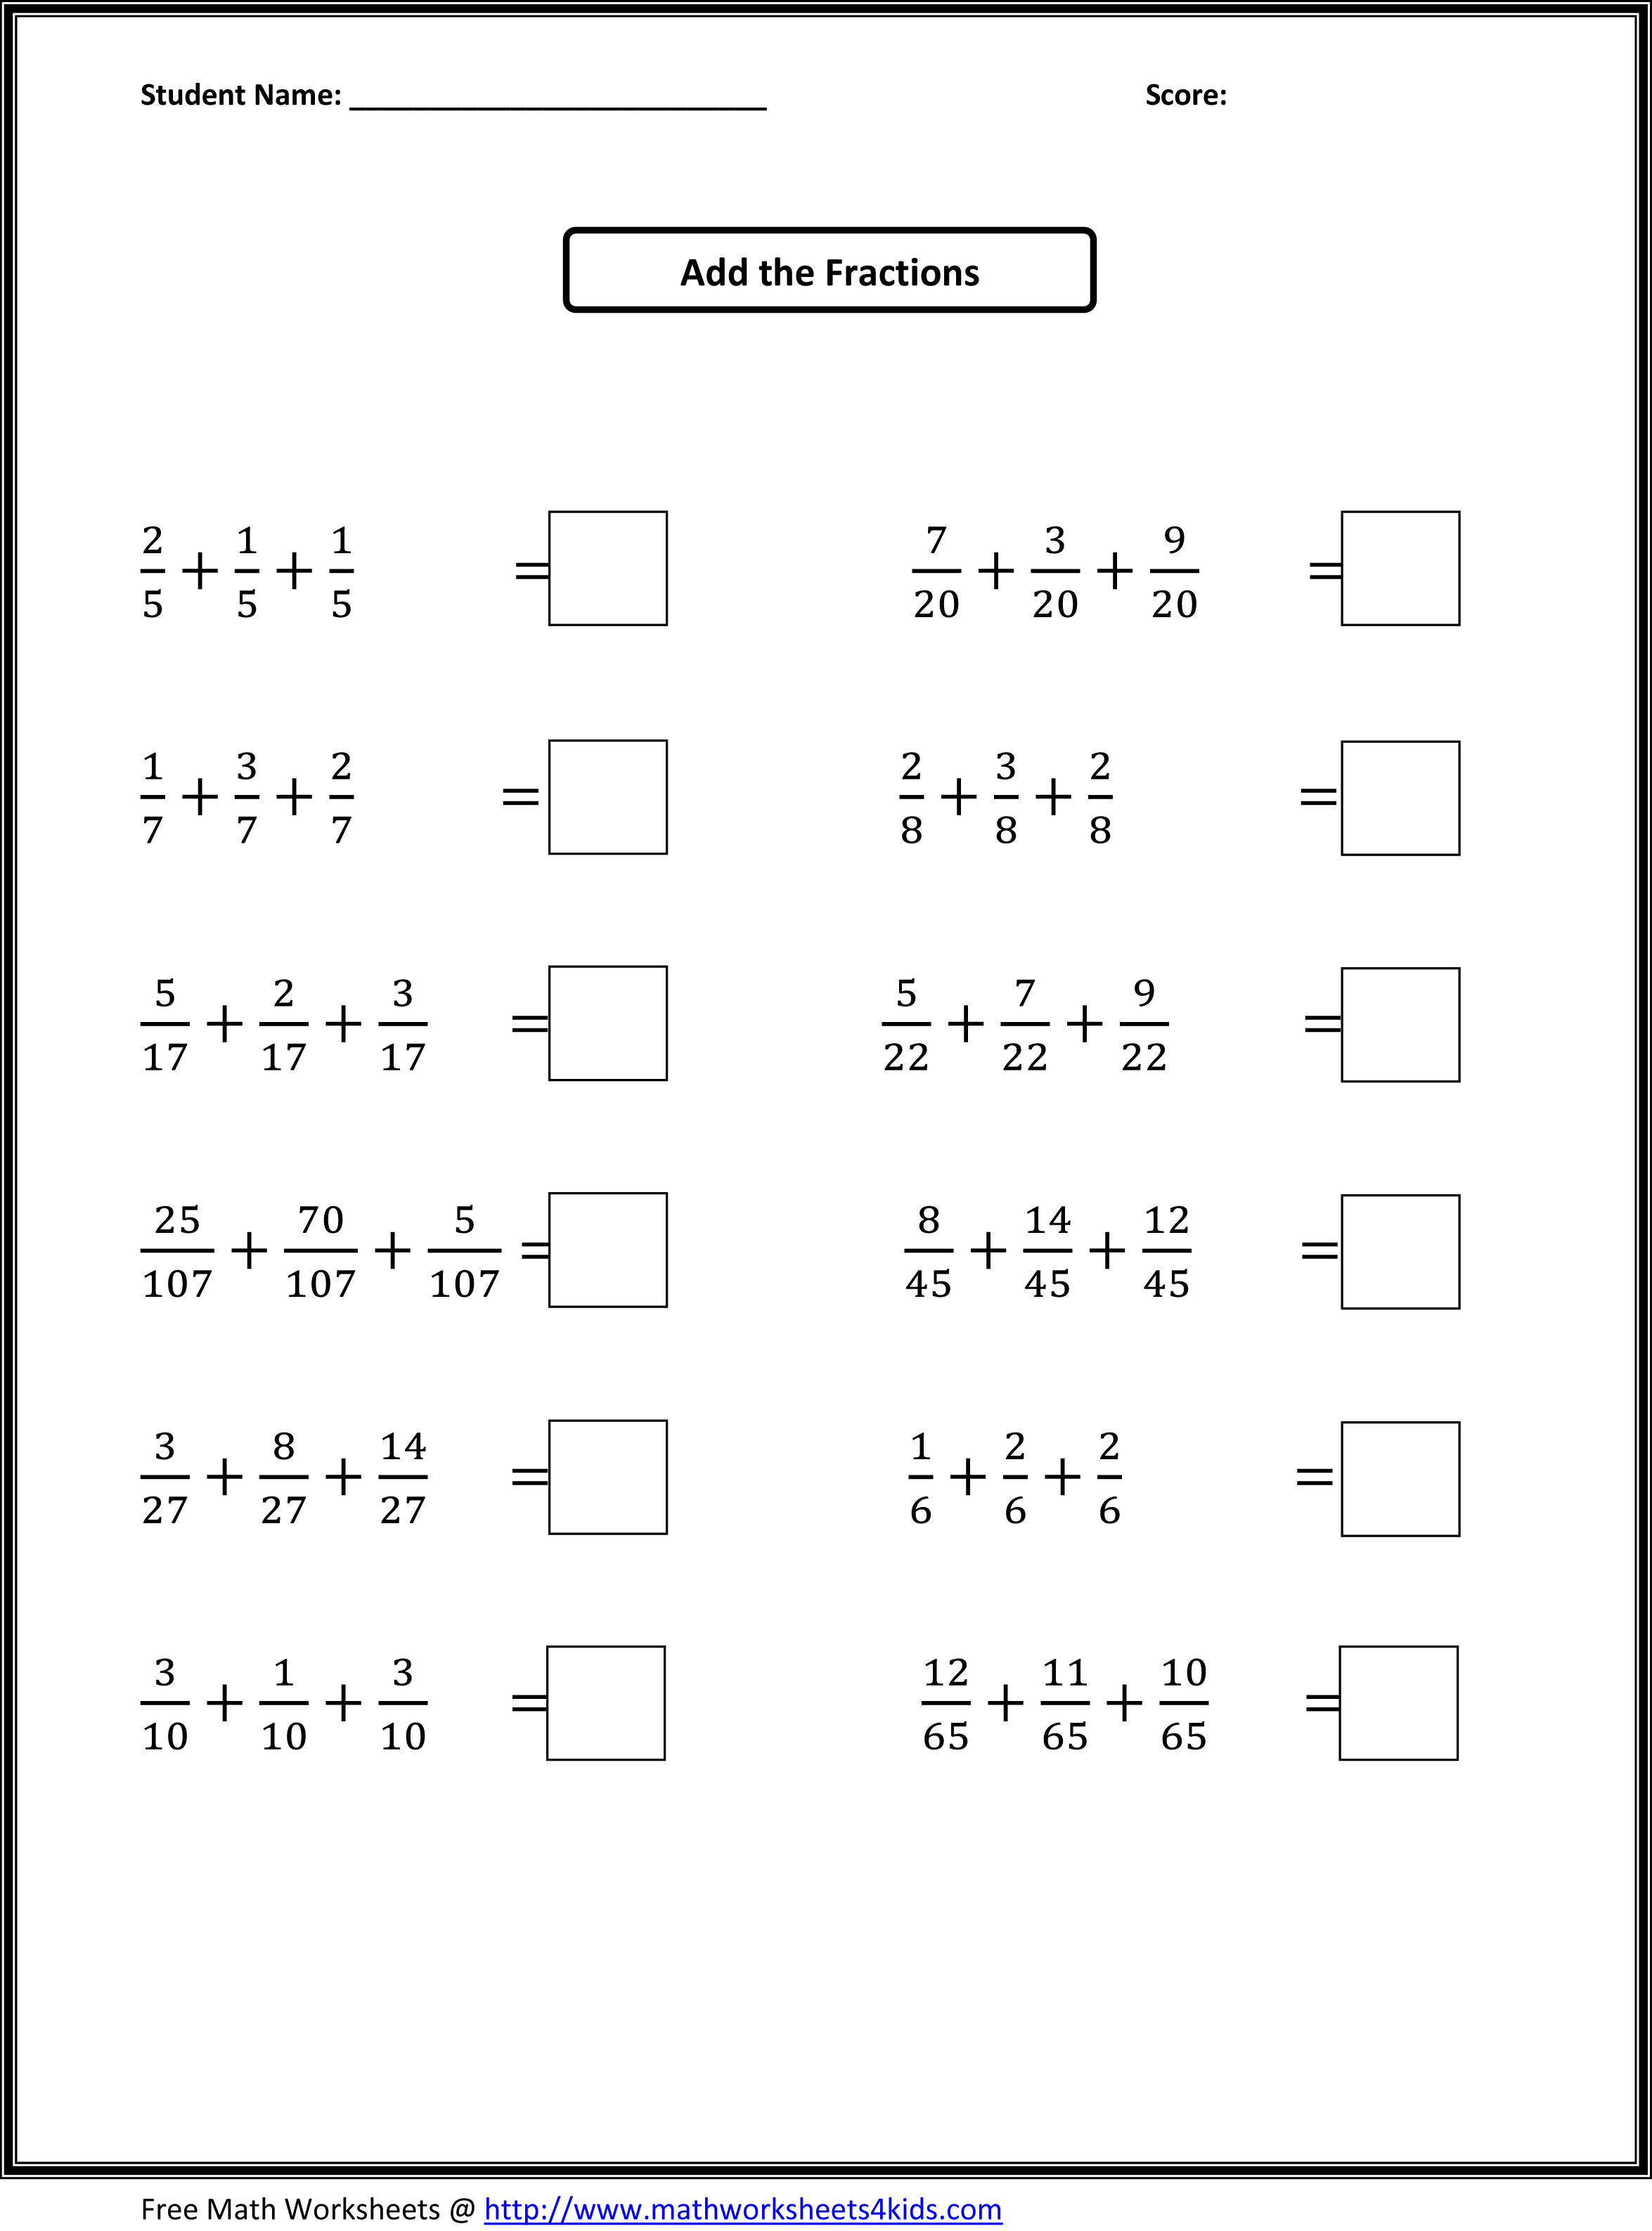 Worksheet Math Worksheets To Print For 4th Grade math worksheets printable 4th grade k5 learning mixed review for grade